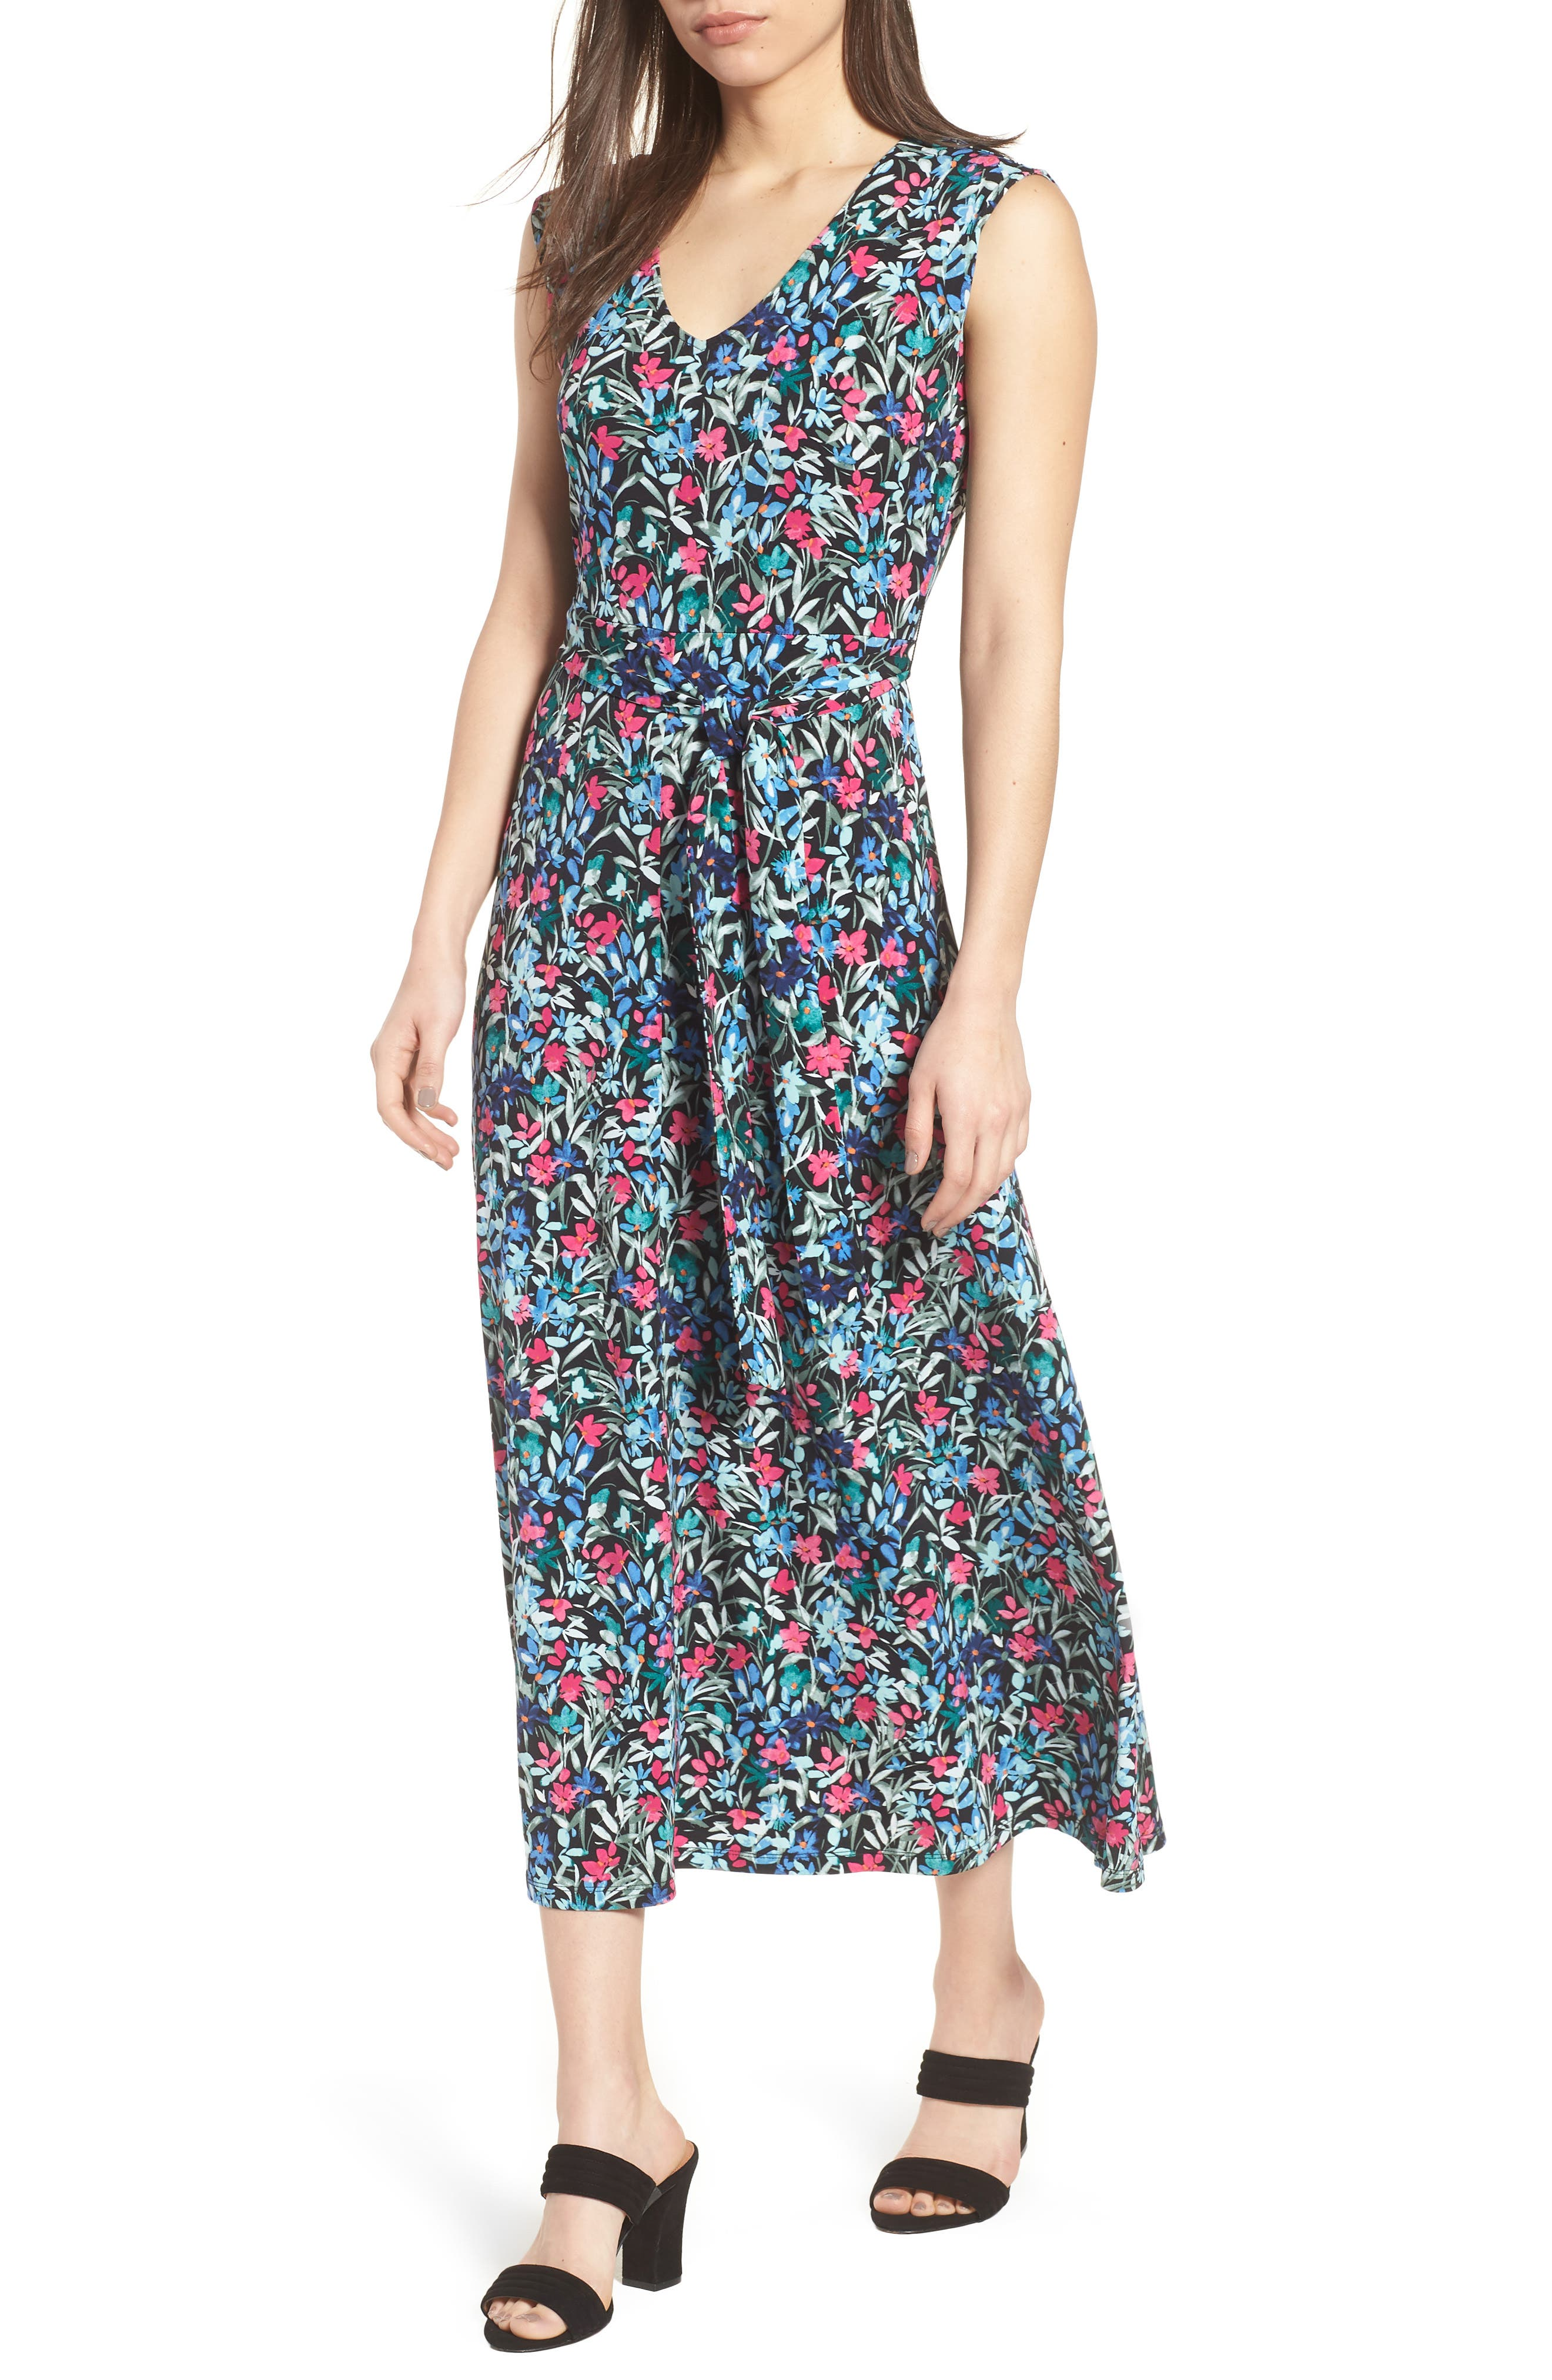 Radiant Flowers Sleeveless Tie Waist Dress,                             Main thumbnail 1, color,                             060-Rich Black